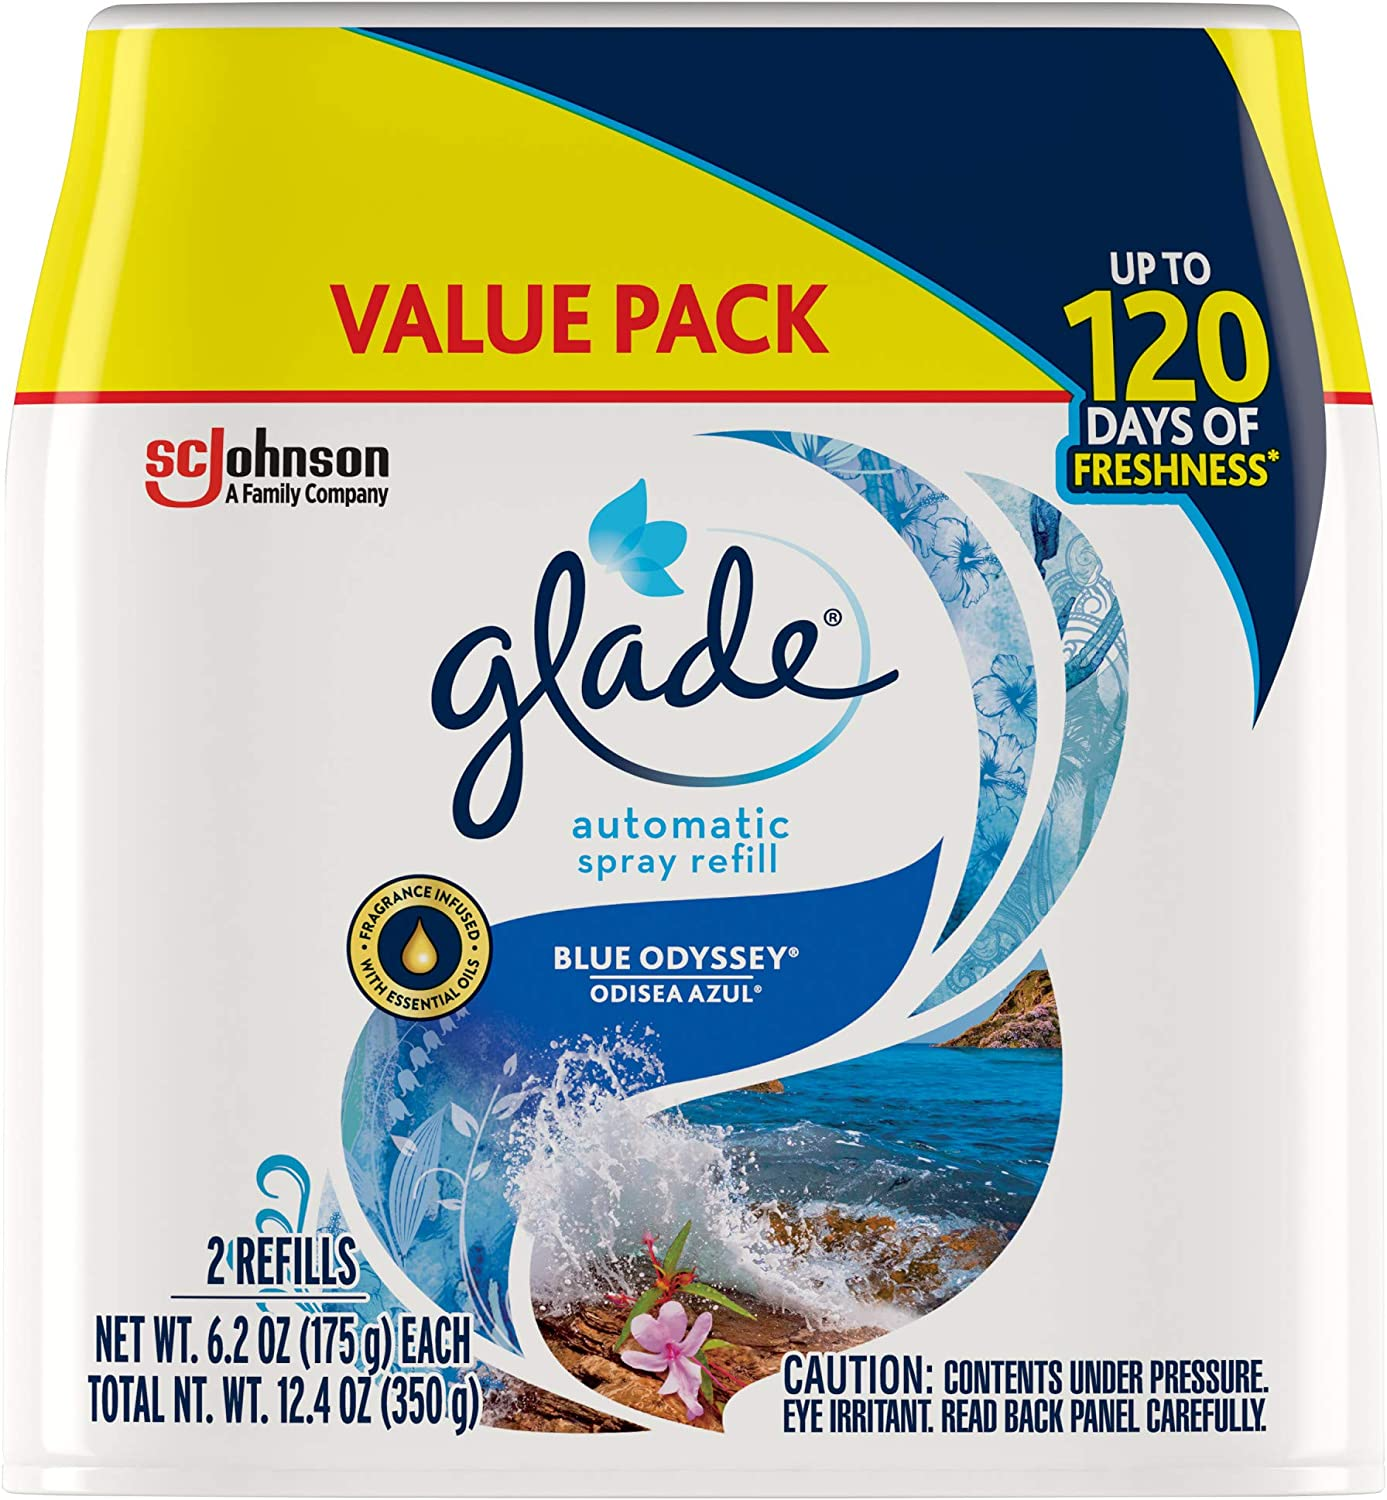 Glade Automatic Spray Refill Blue Odyssey, Fits in Holder For Up to 60 Days of Freshness, 6.2 oz, Pack of 2